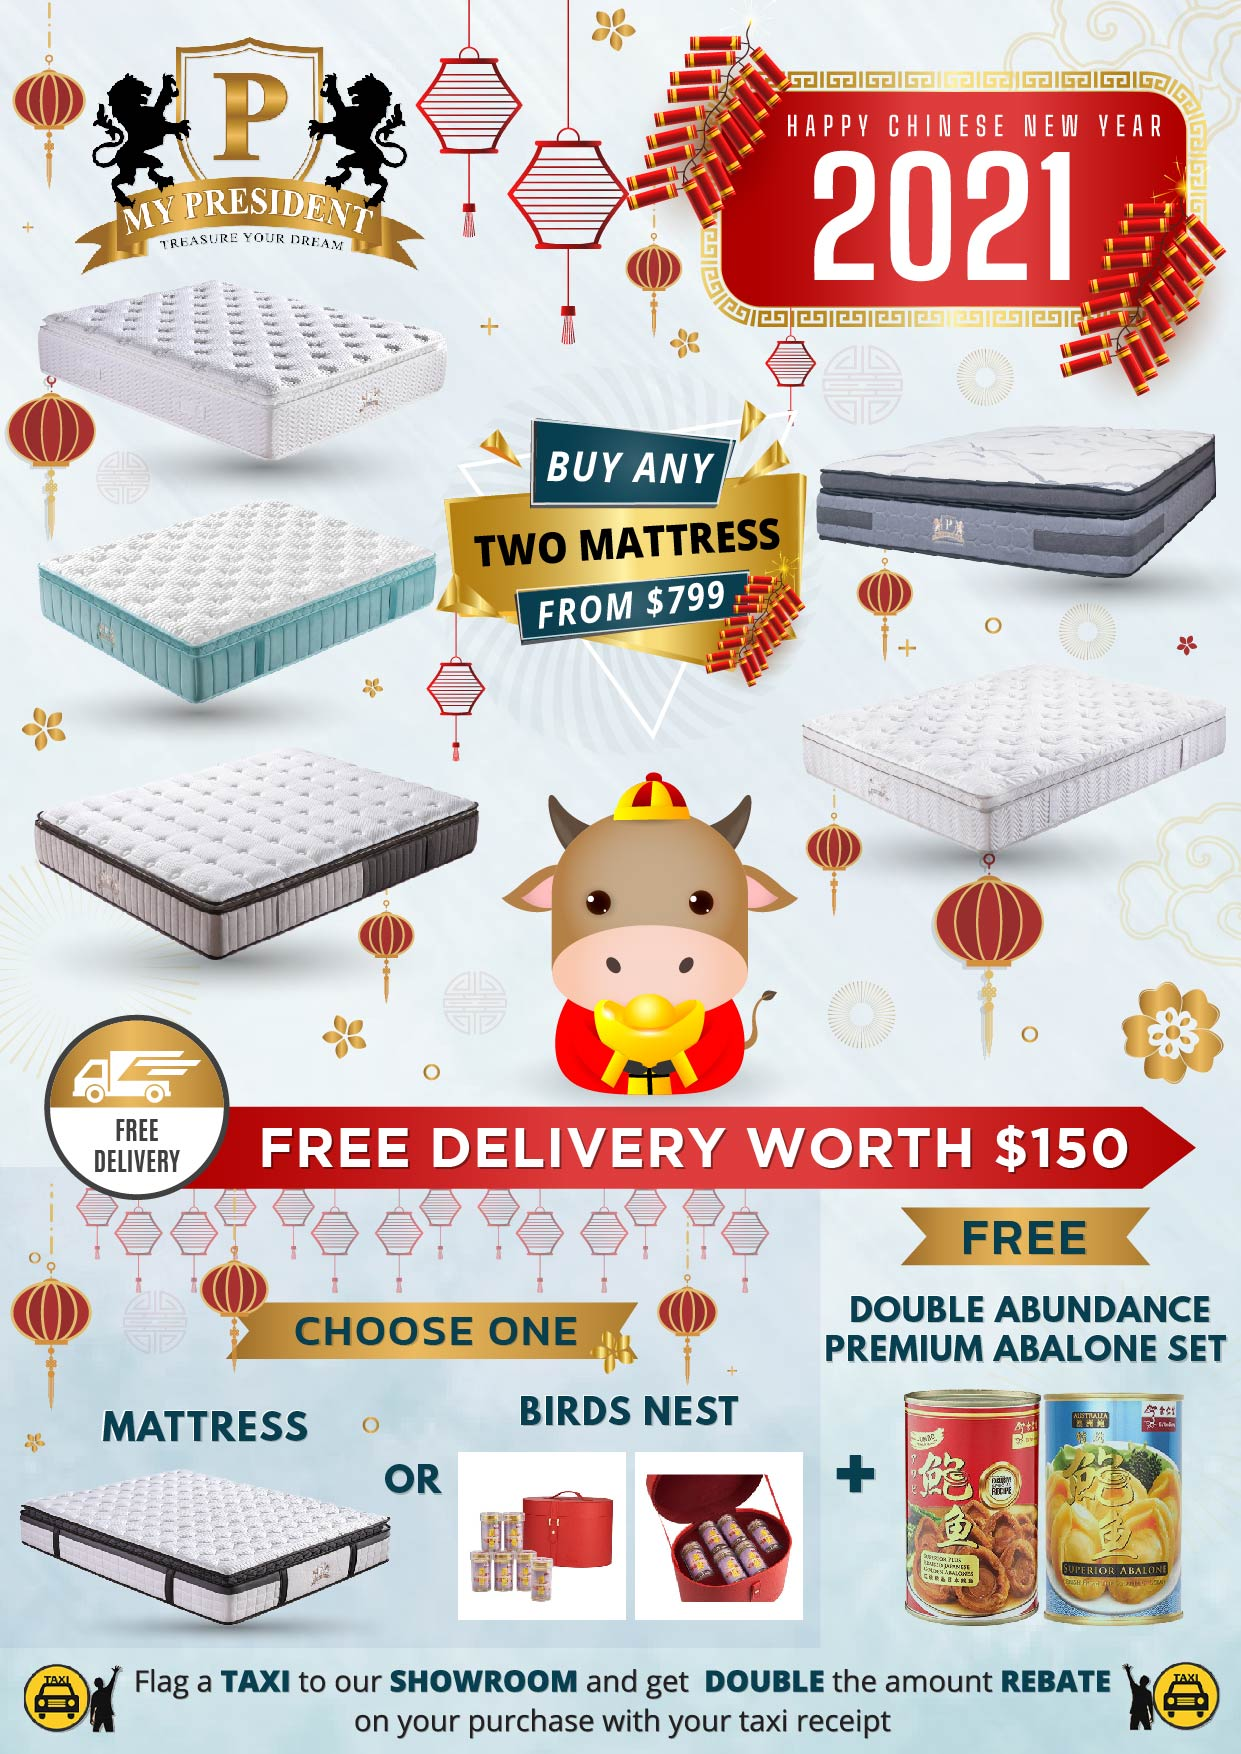 twomattress-birdsnest-chinese-newyear-promotions